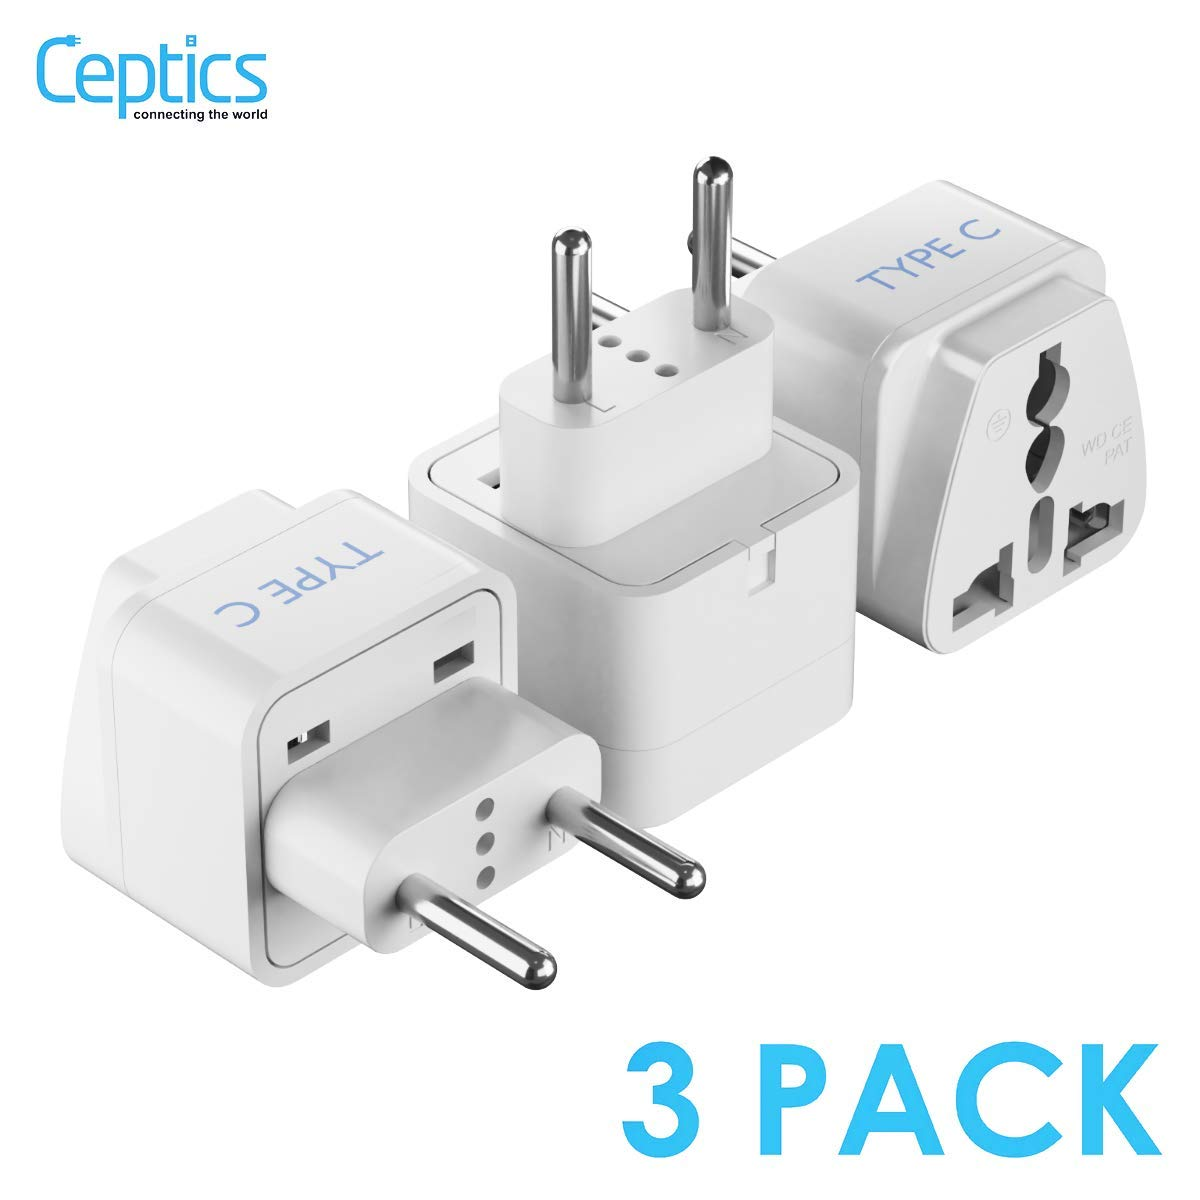 European Travel Plug Adapter (Type C) by Ceptics,  Universal to European EU, Power Charge your Electronics in Italy, Greece, Germany, Outlet Adaptor  3 Pack